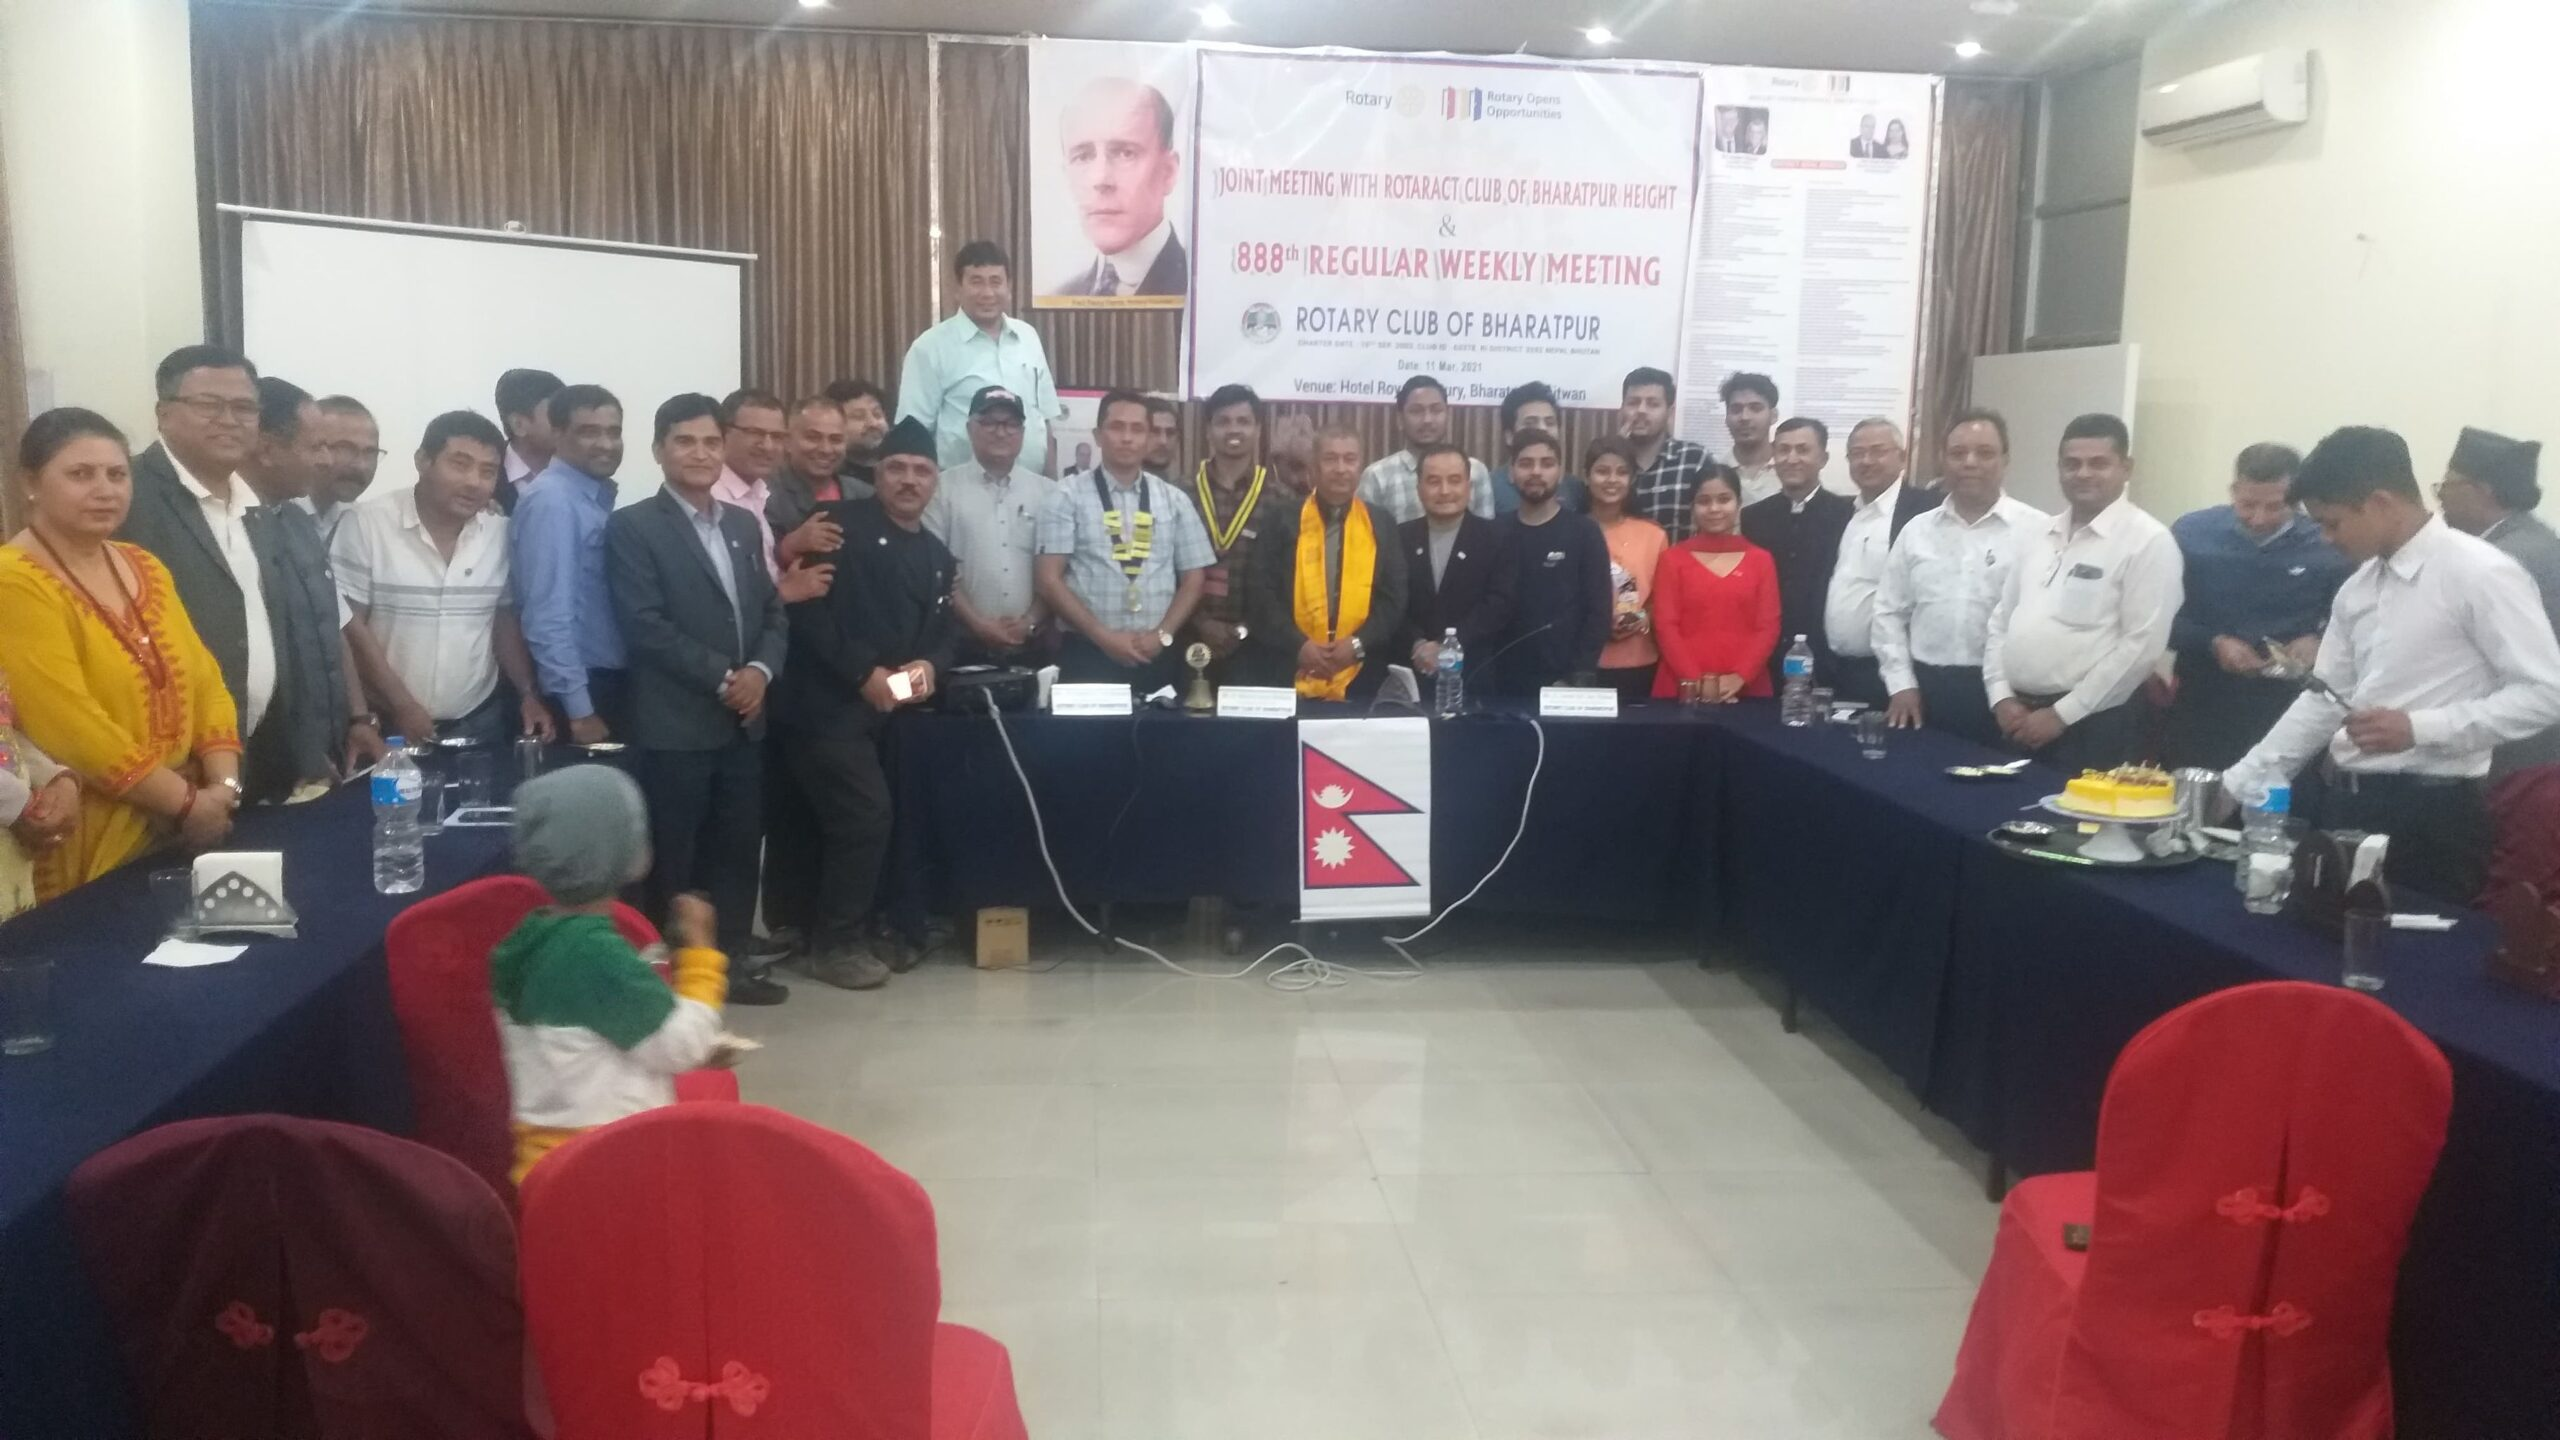 Joint Meeting with Rotract Club of Bharatpur Height and 888th Weekly Regular Meeting of Rotary Club of Bharatpur